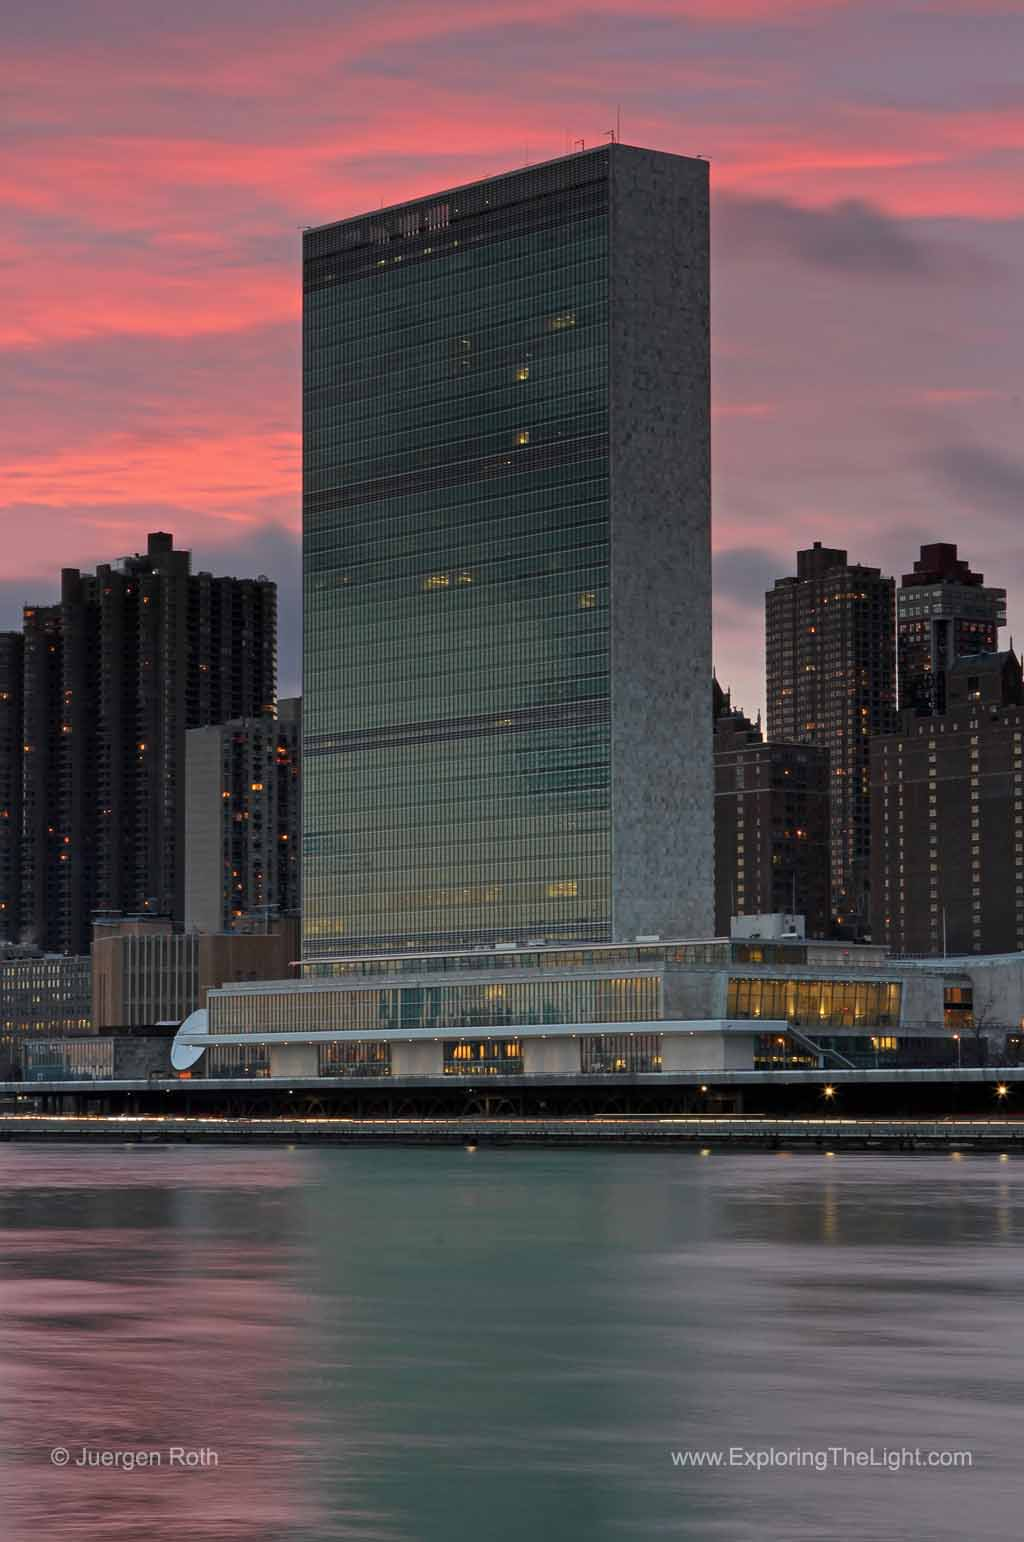 http://juergen-roth.artistwebsites.com/featured/headquarters-of-the-united-nations-juergen-roth.html